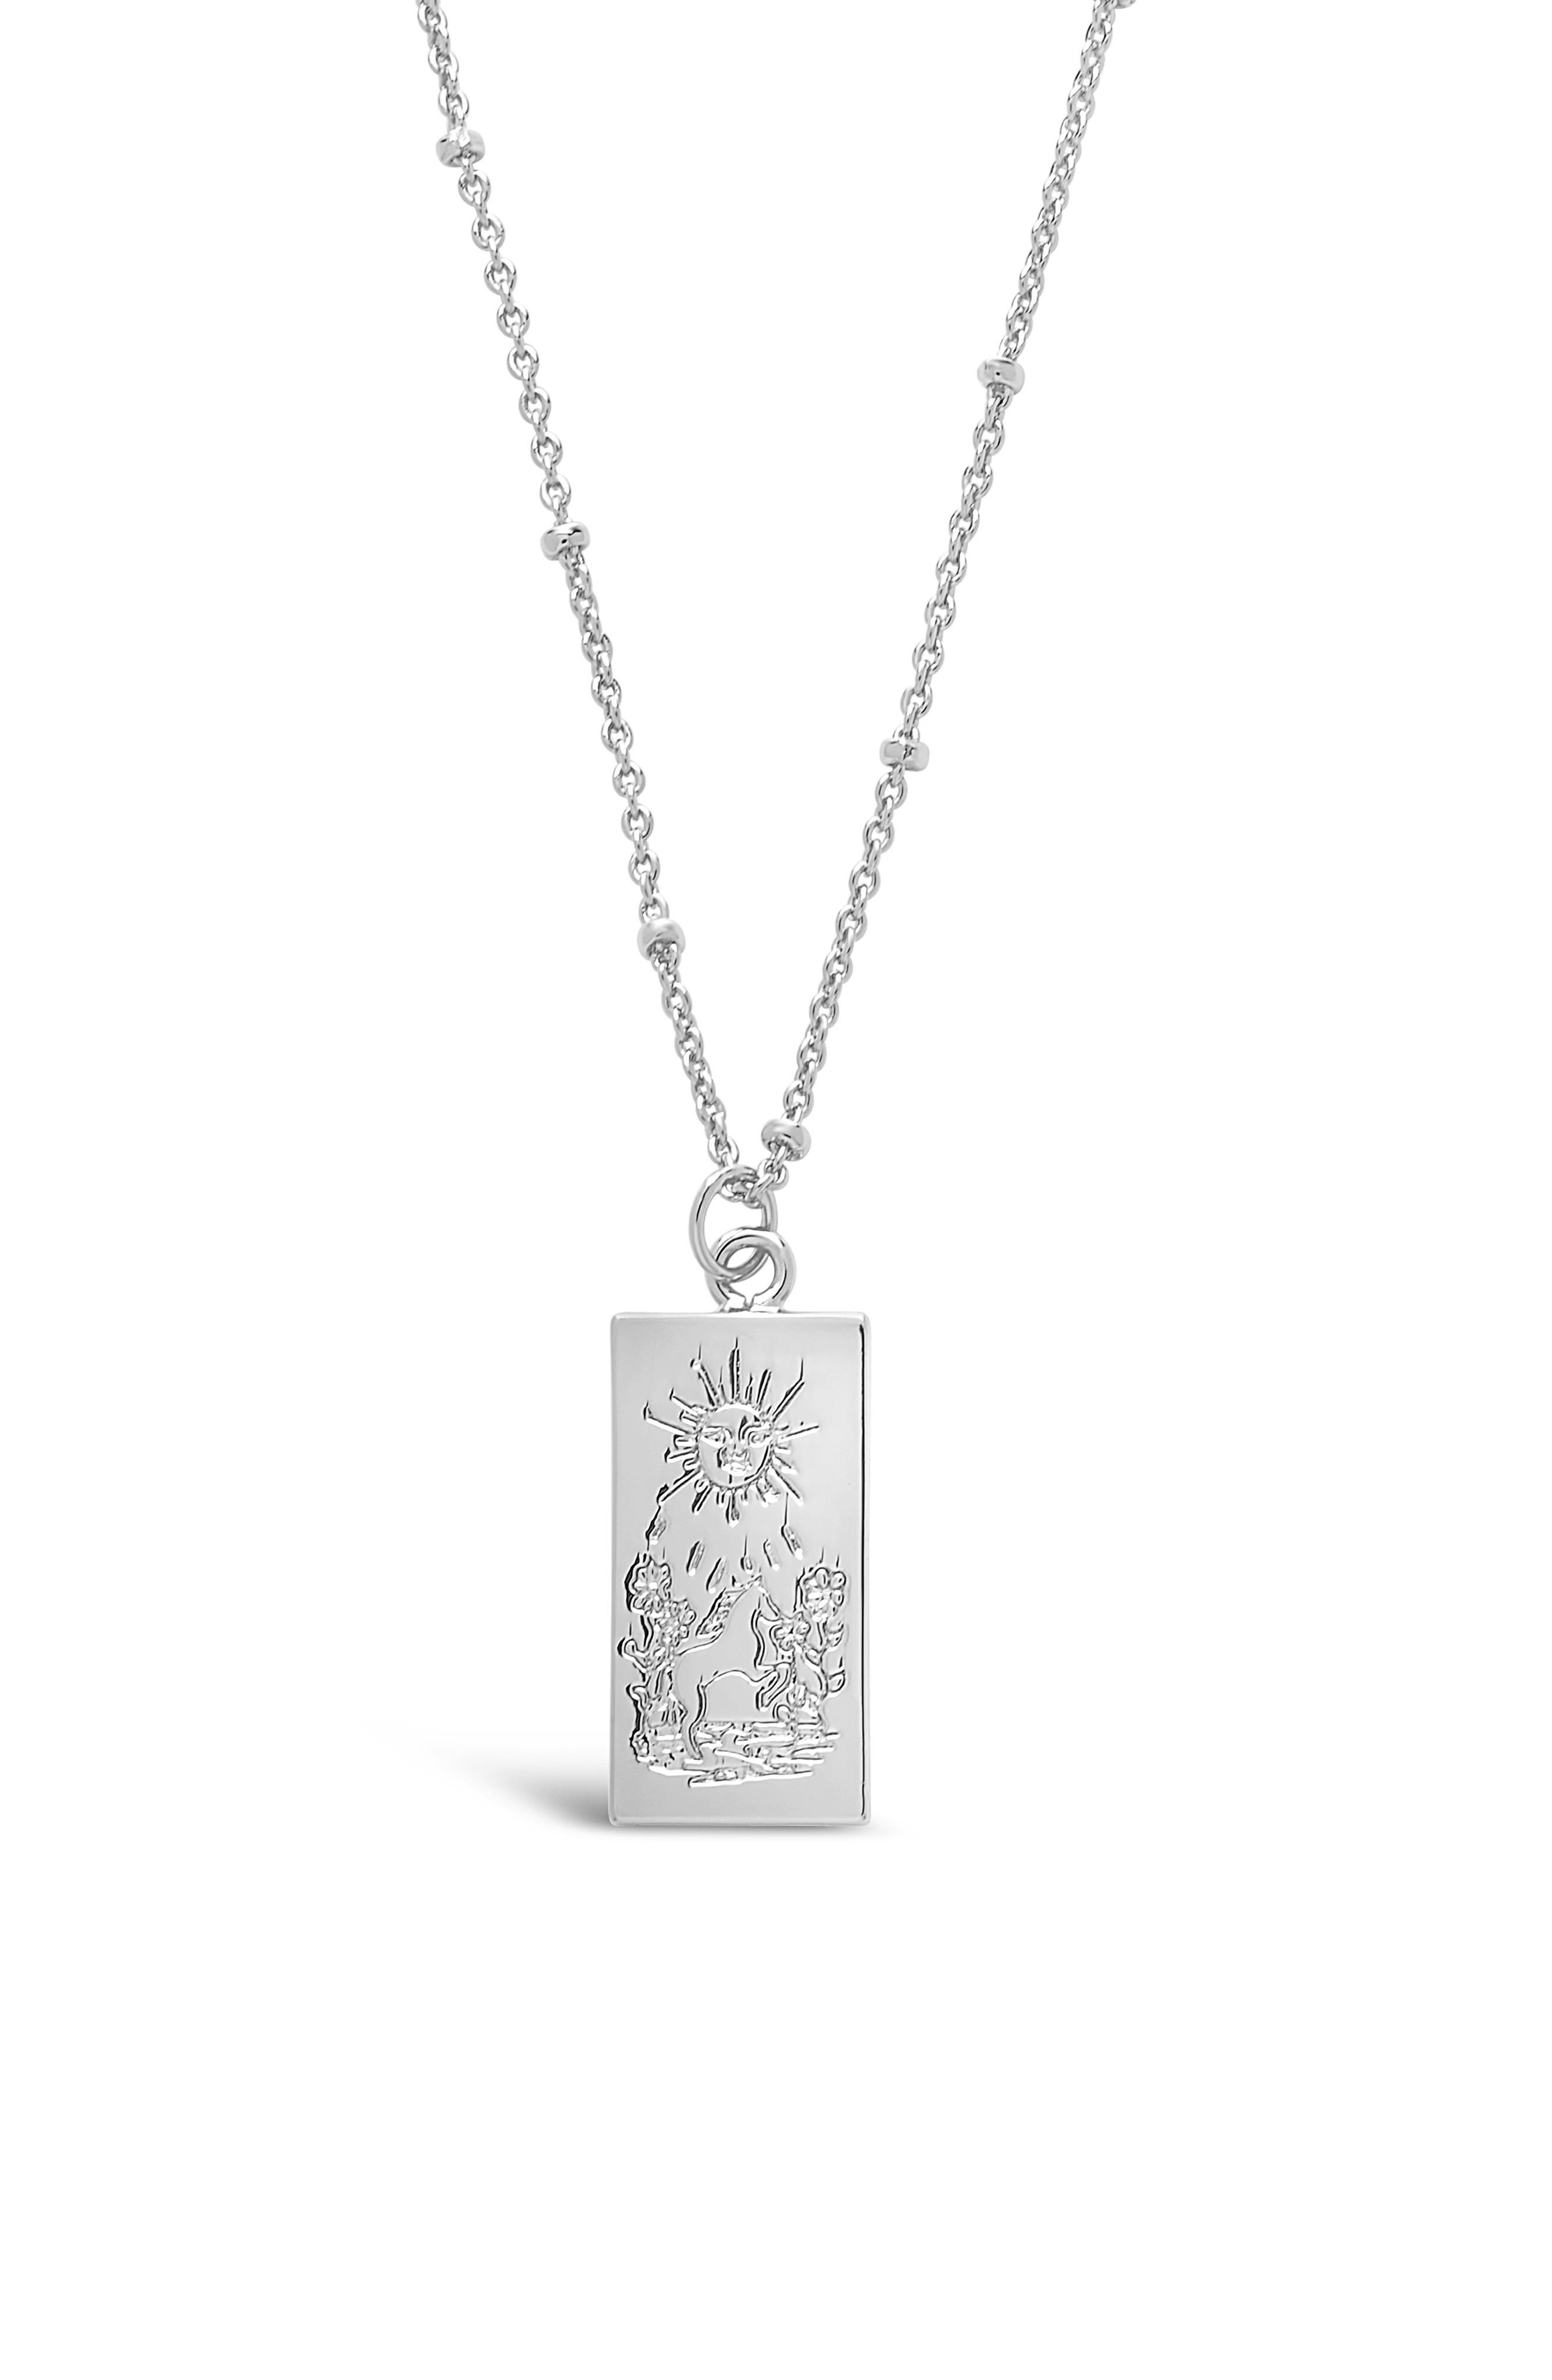 Bring good fortune and harmony to your daily life with a whimsical necklace designed with a sun-engraved pendant. Style Name: Sterling Forever Sun Pendant Necklace. Style Number: 6114453. Available in stores.